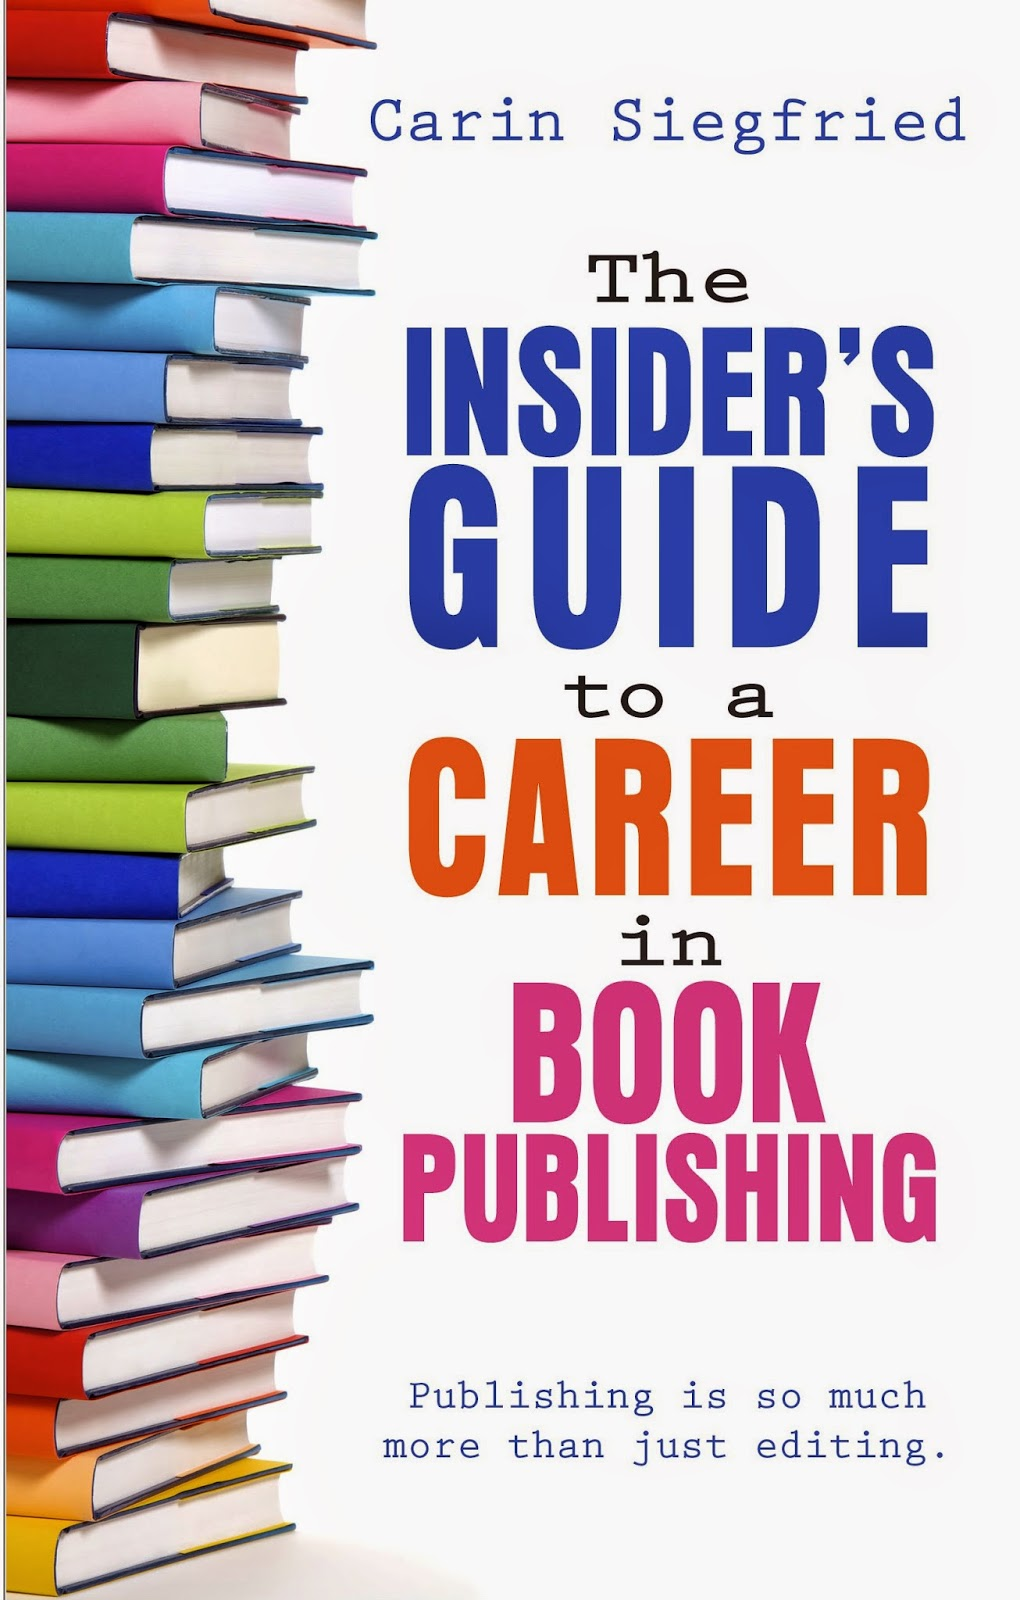 caroline bookbinder  i wrote a book the insider s guide to a career in book publishing by carin siegfried